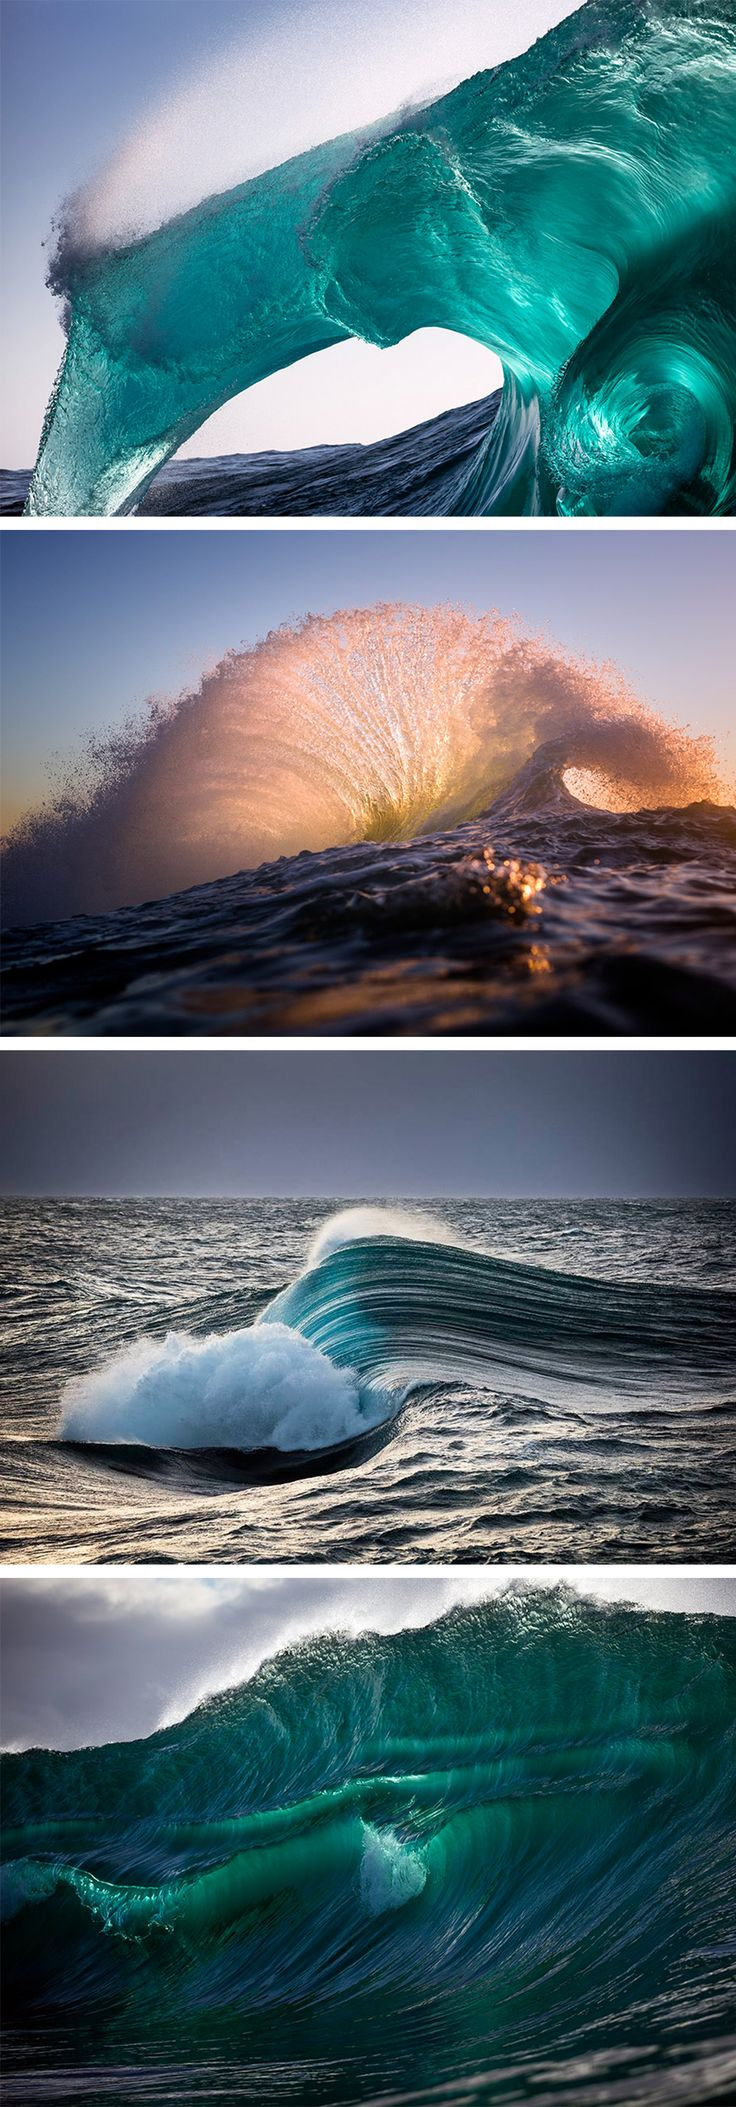 Best Waves Images On Pinterest Landscapes Nature And Water - Incredible photographs of crashing ocean waves by ben thouard